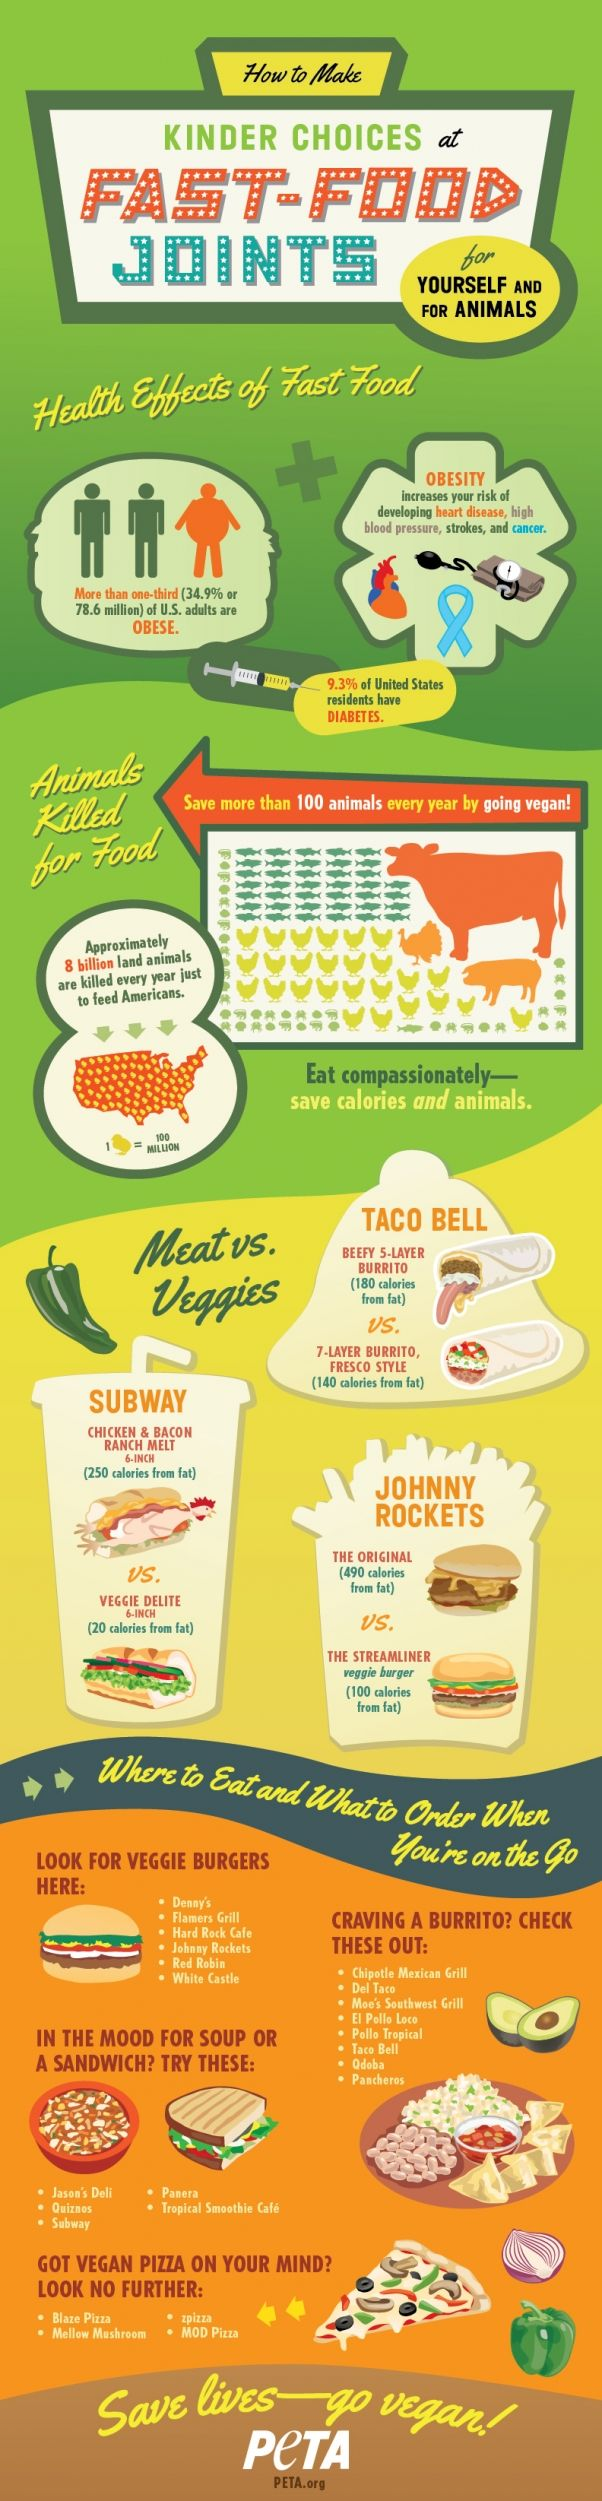 How to eat vegan at your favorite fast food joints! Learn why it's better for both the animals and your body to eat vegan, and then find out which restaurants offer vegan fast food options.